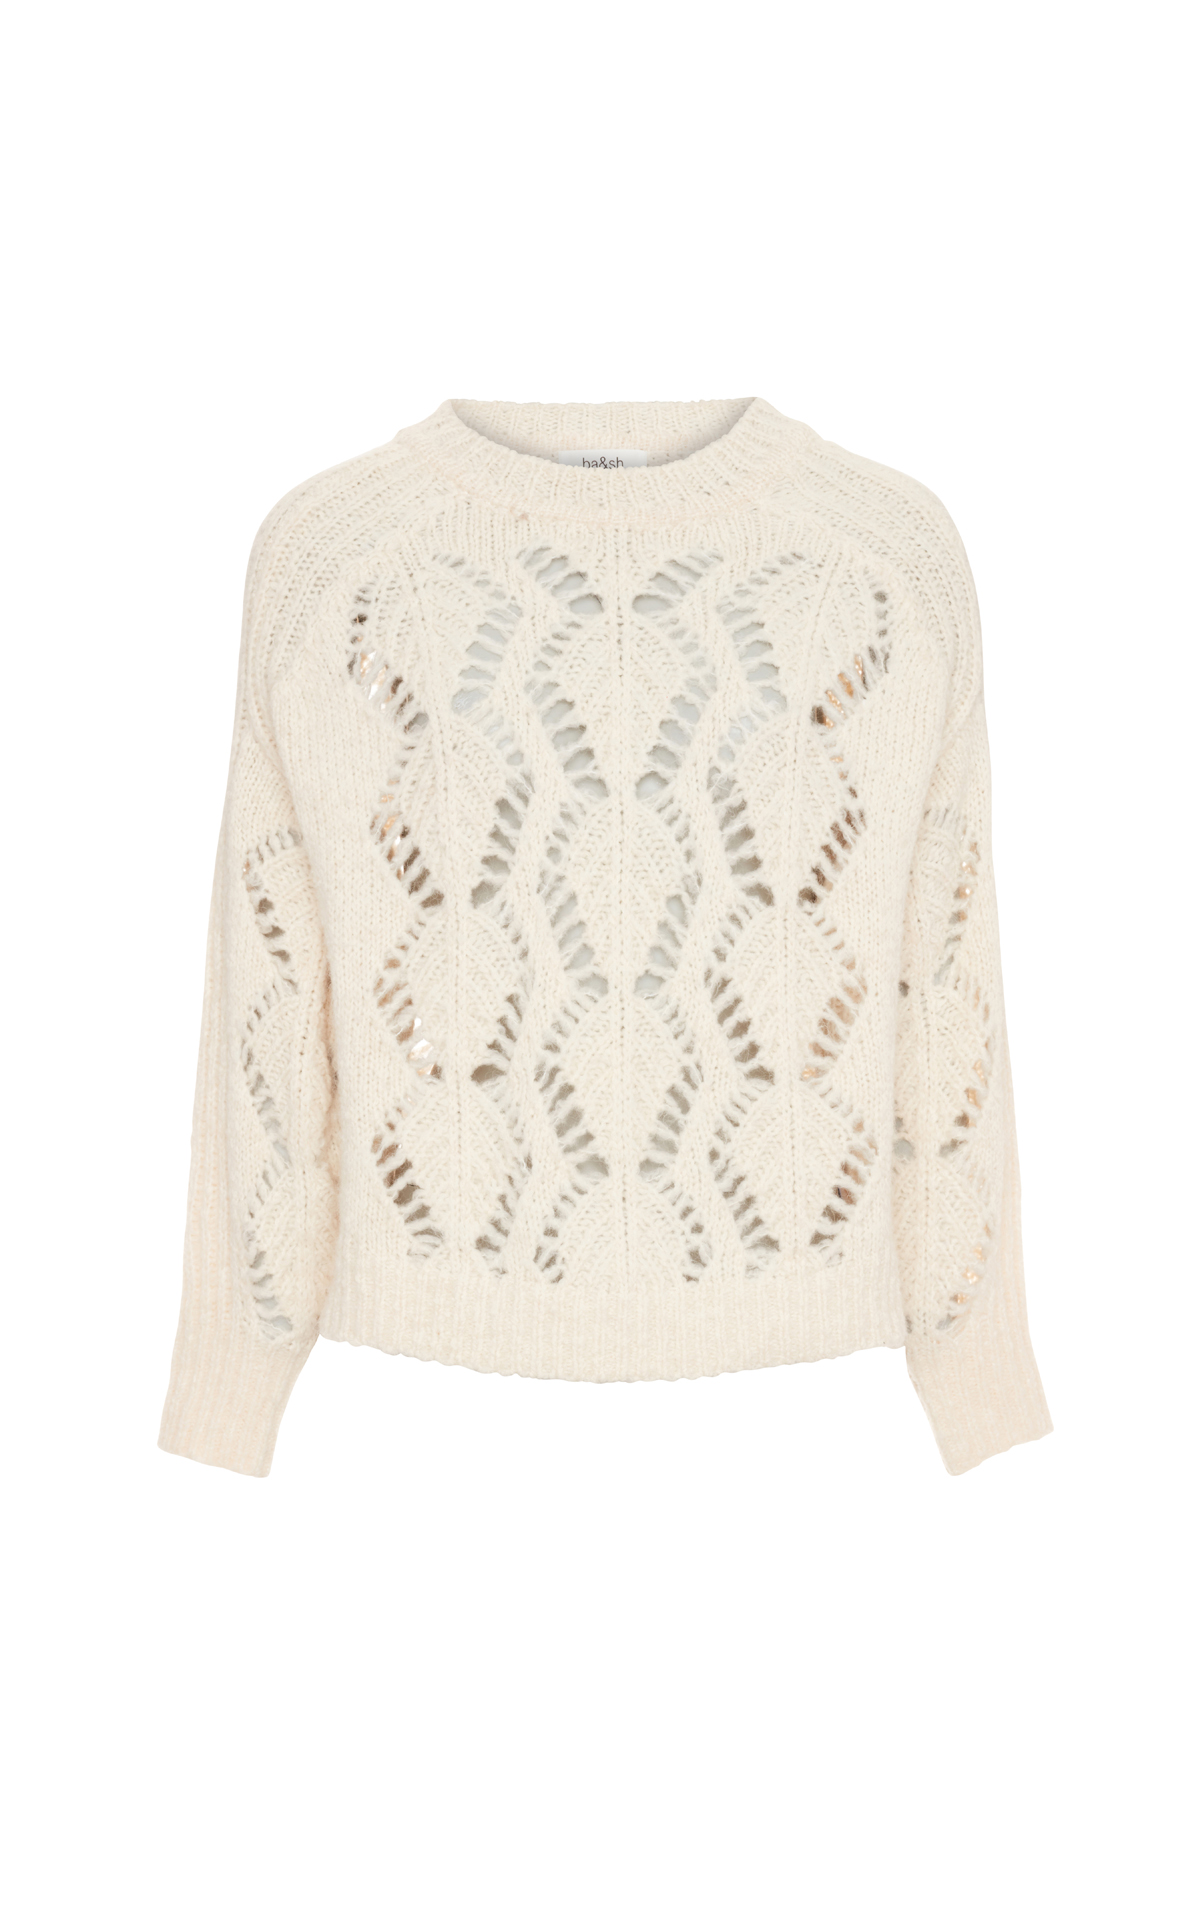 Bash Pavot jumper from Bicester Village